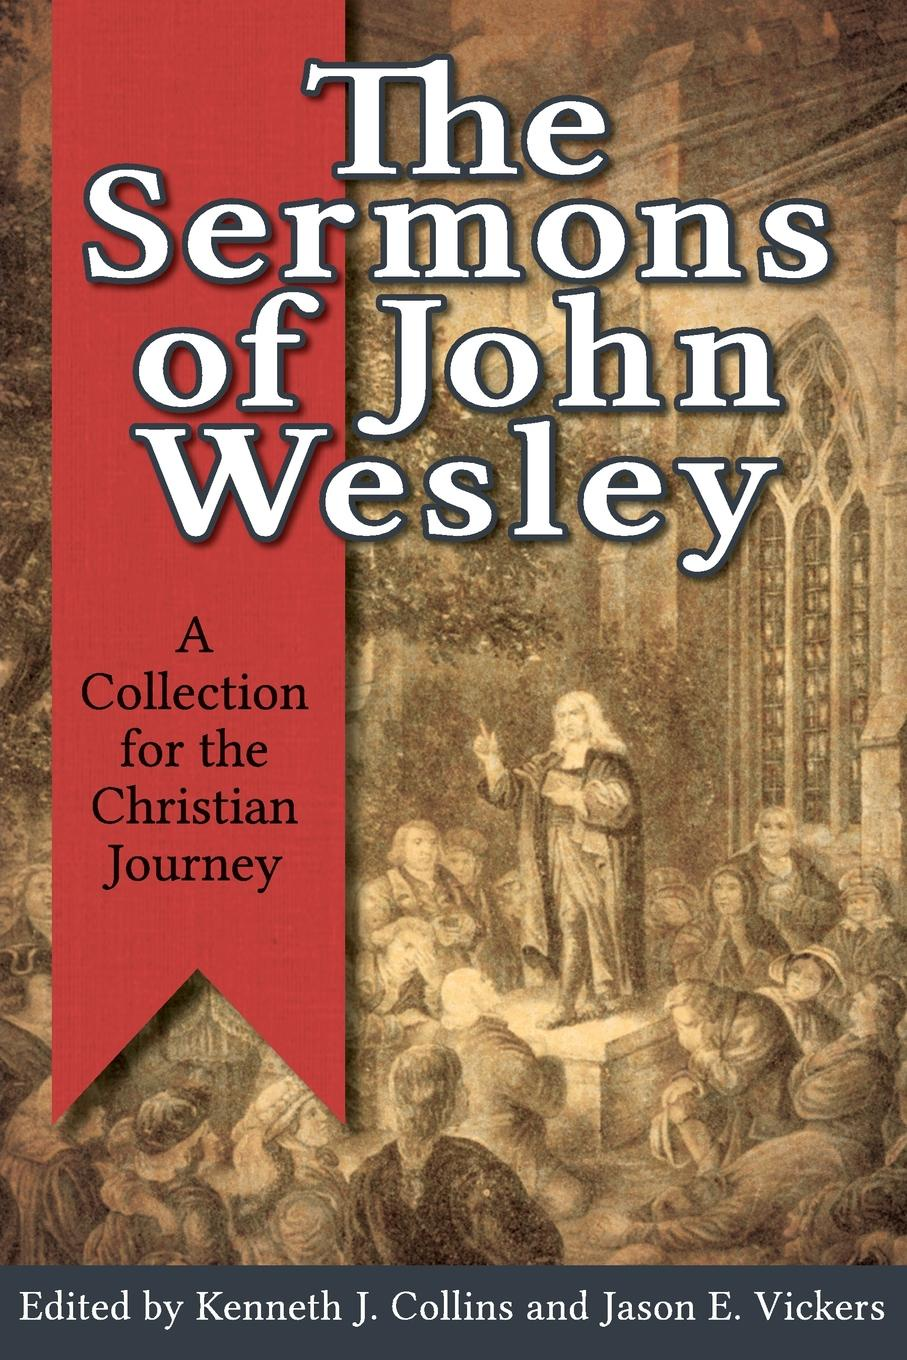 The Sermons of John Wesley. A Collection for the Christian Journey the sermons of john wesley a collection for the christian journey